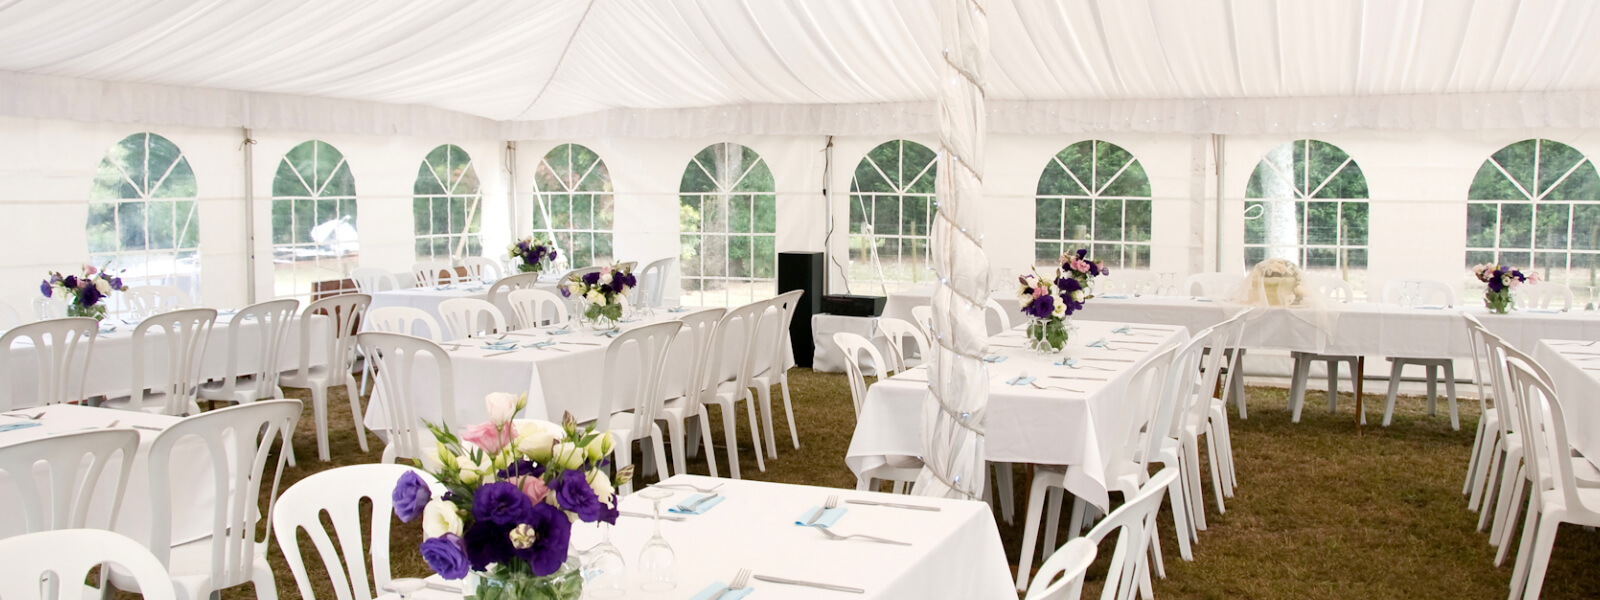 Marquee Hire in West Midlands & Surrounding Areas